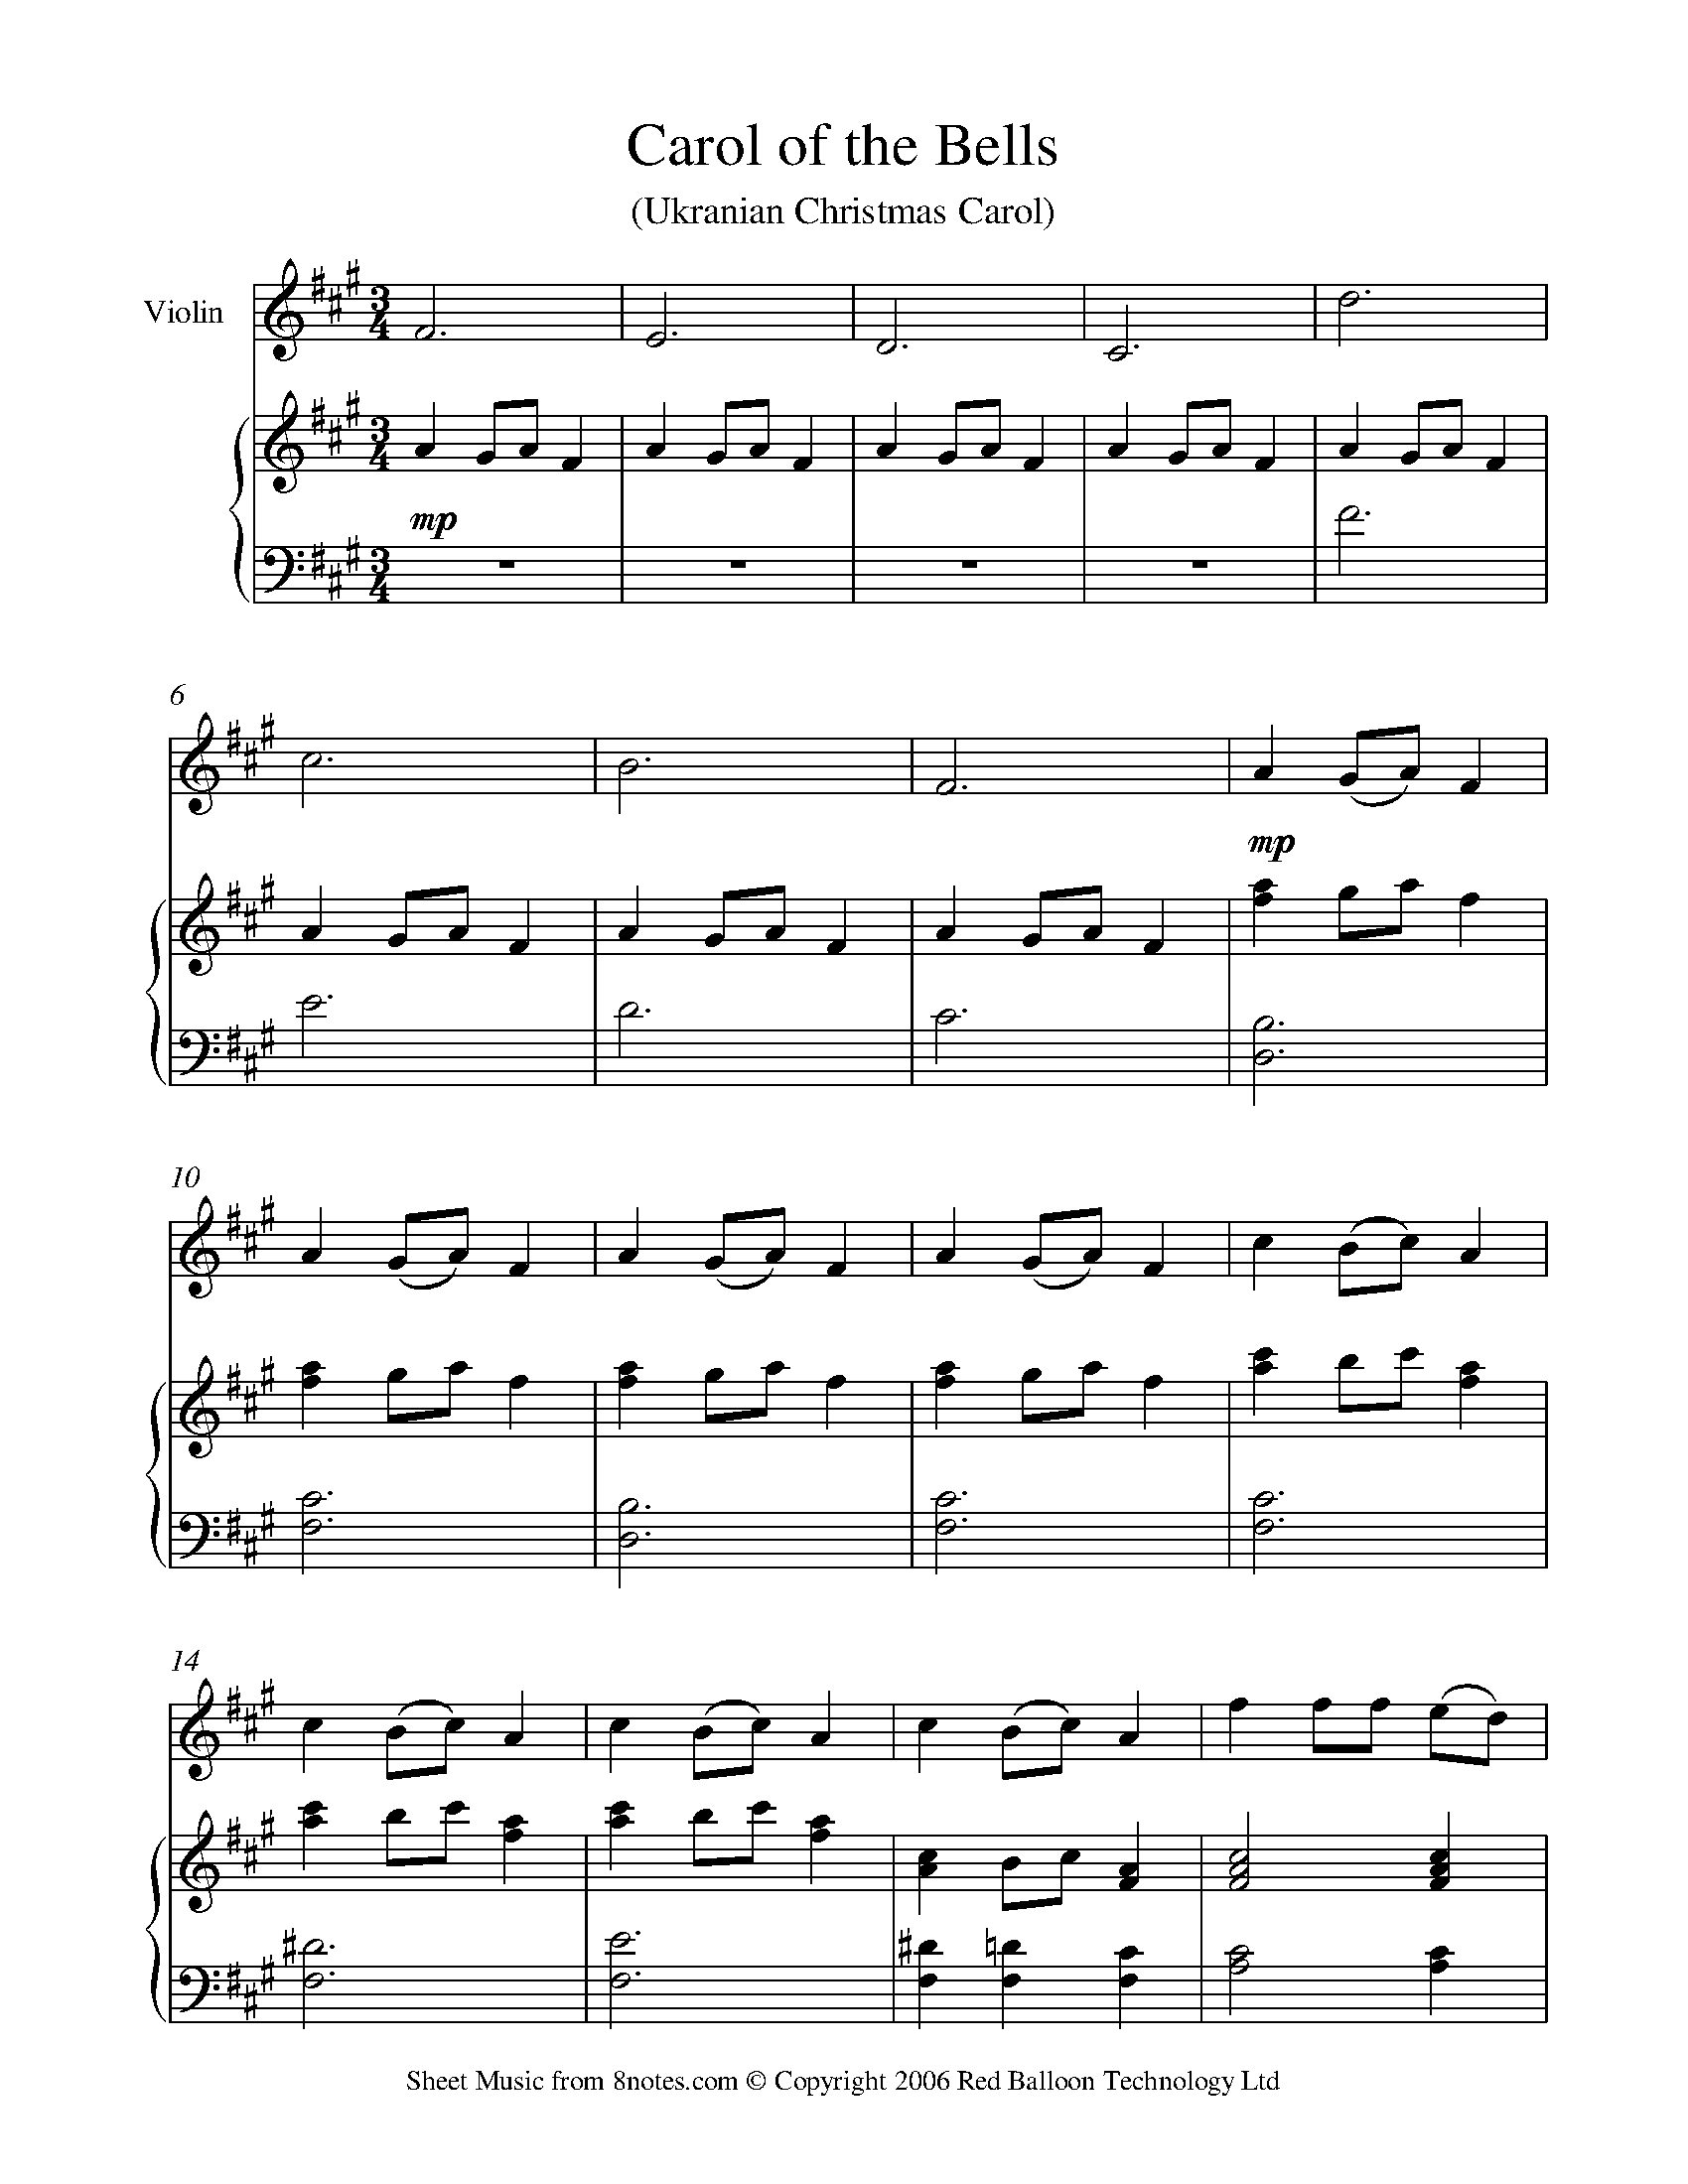 picture relating to Carol of the Bells Free Printable Sheet Music named Carol of the Bells sheet audio for Violin -